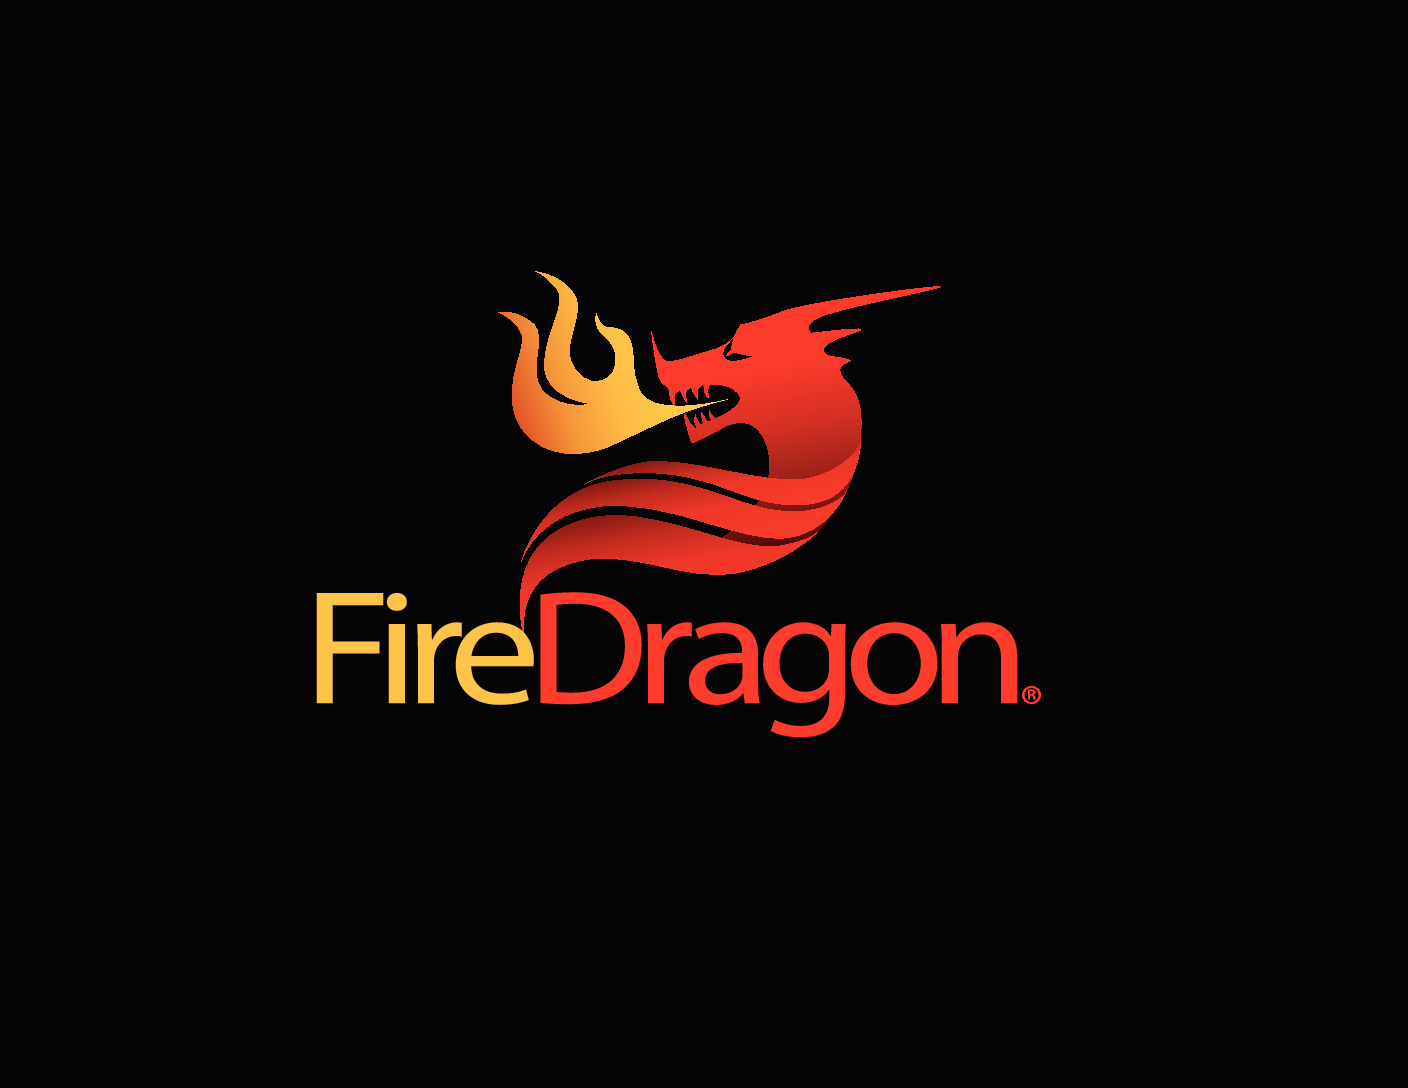 (Sponsored) Firewalls, Security, And FireDragonSecurity